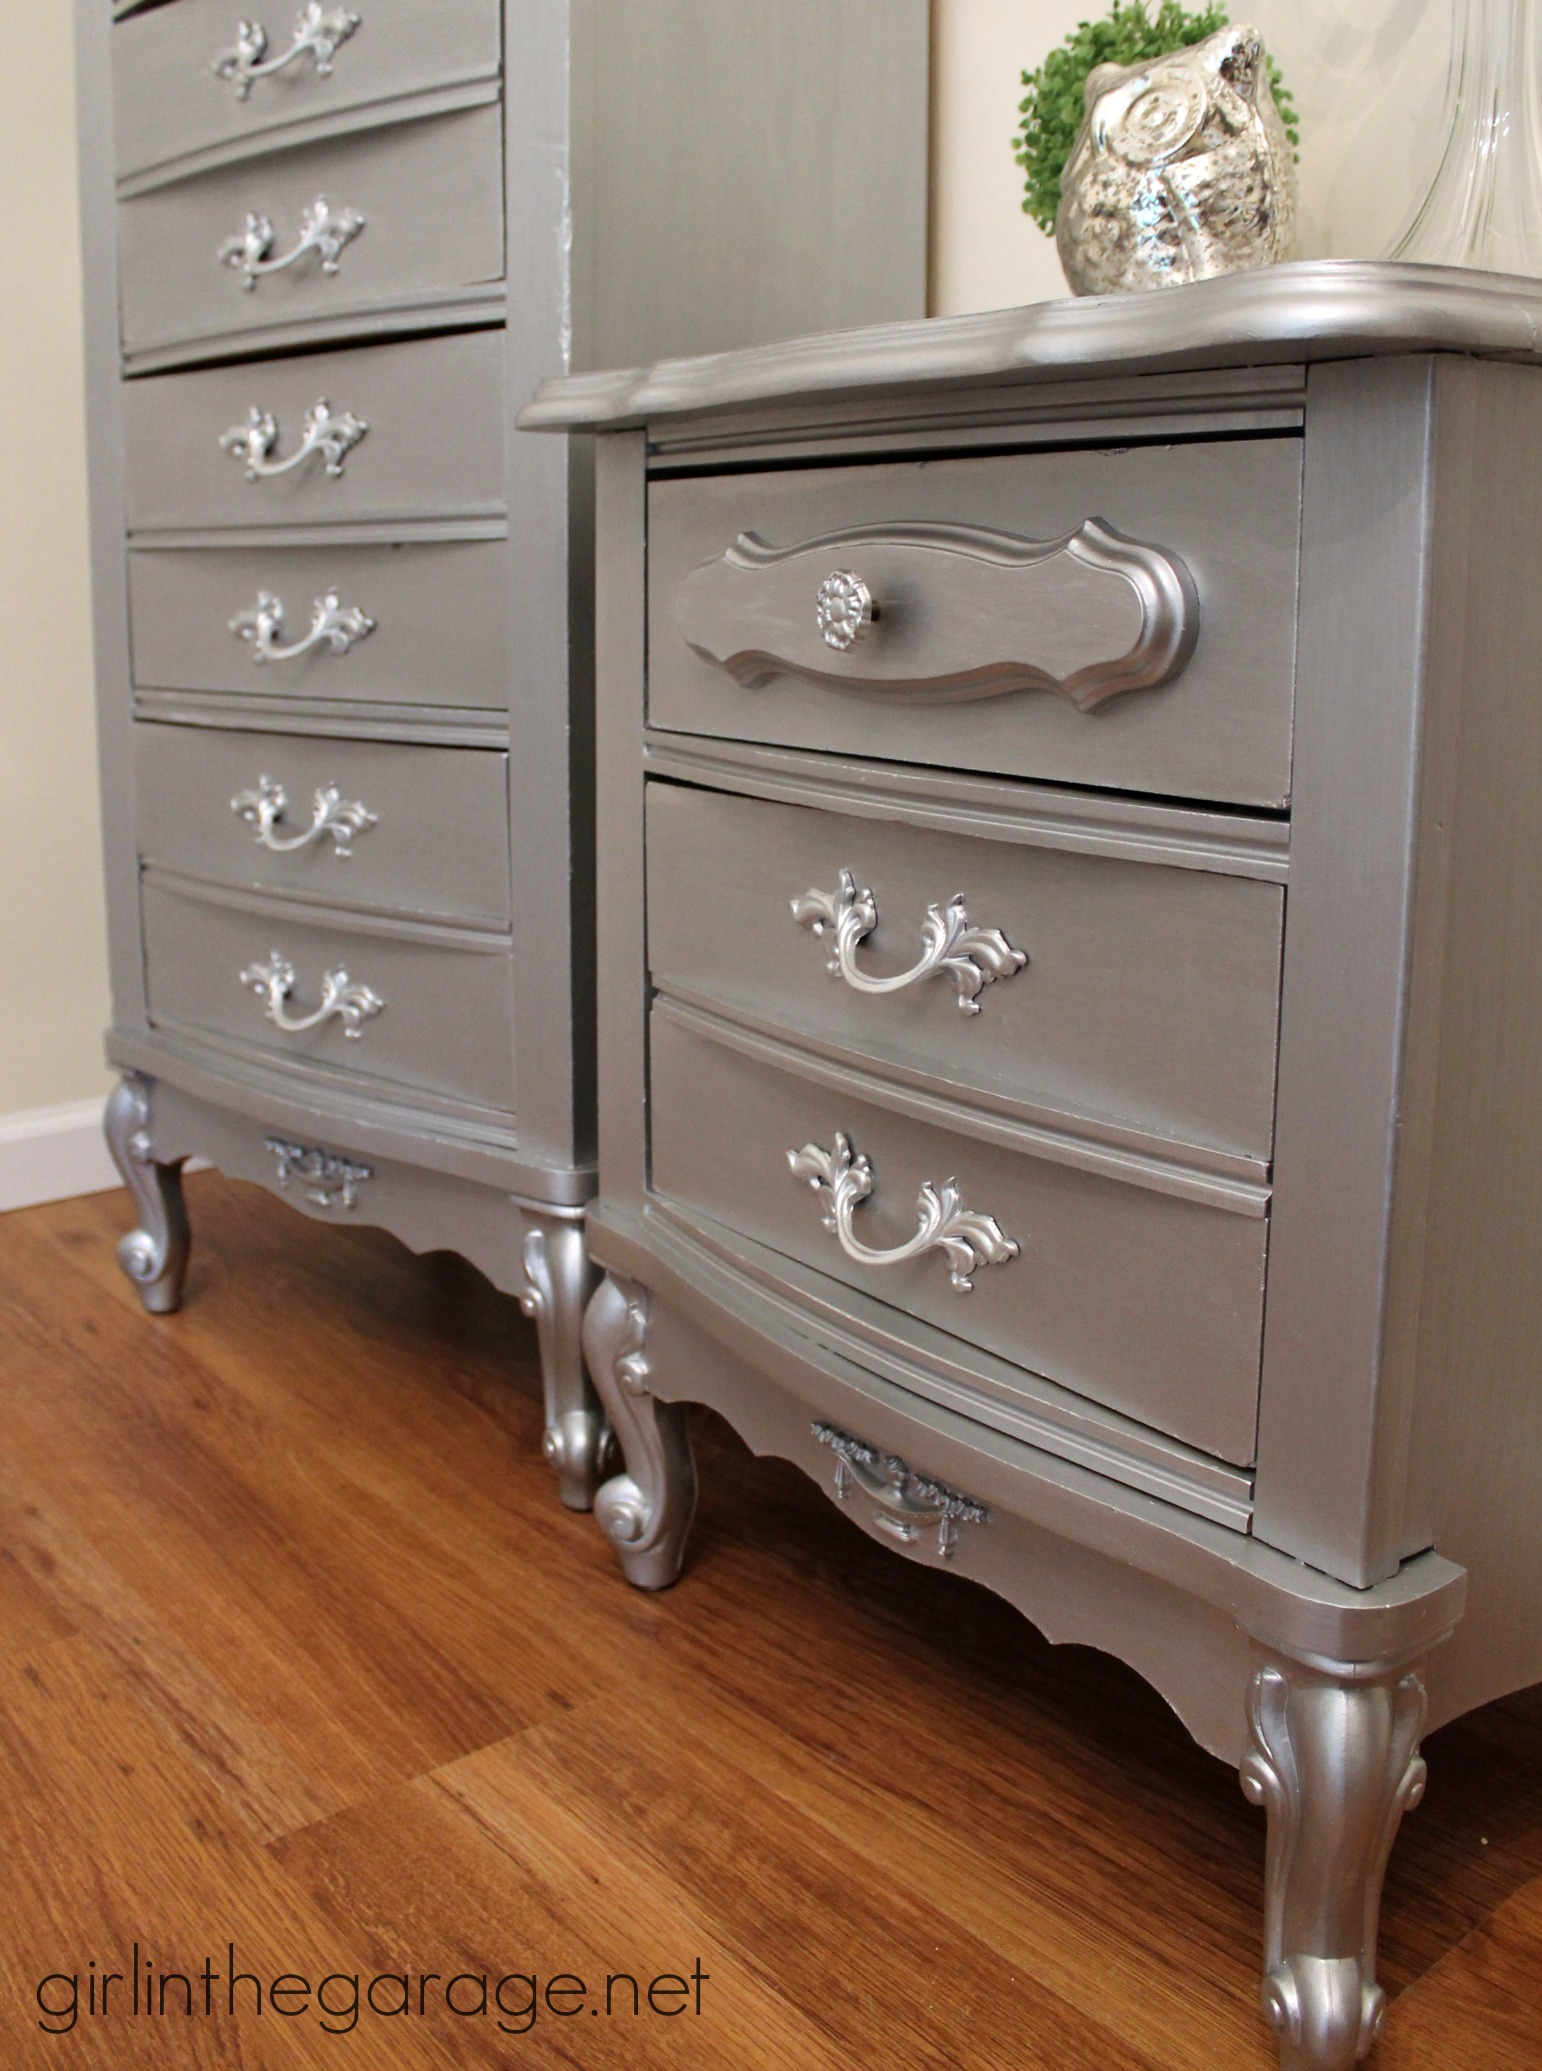 Top 10 popular diy projects and posts of 2014 girl in for Painting designs on wood furniture